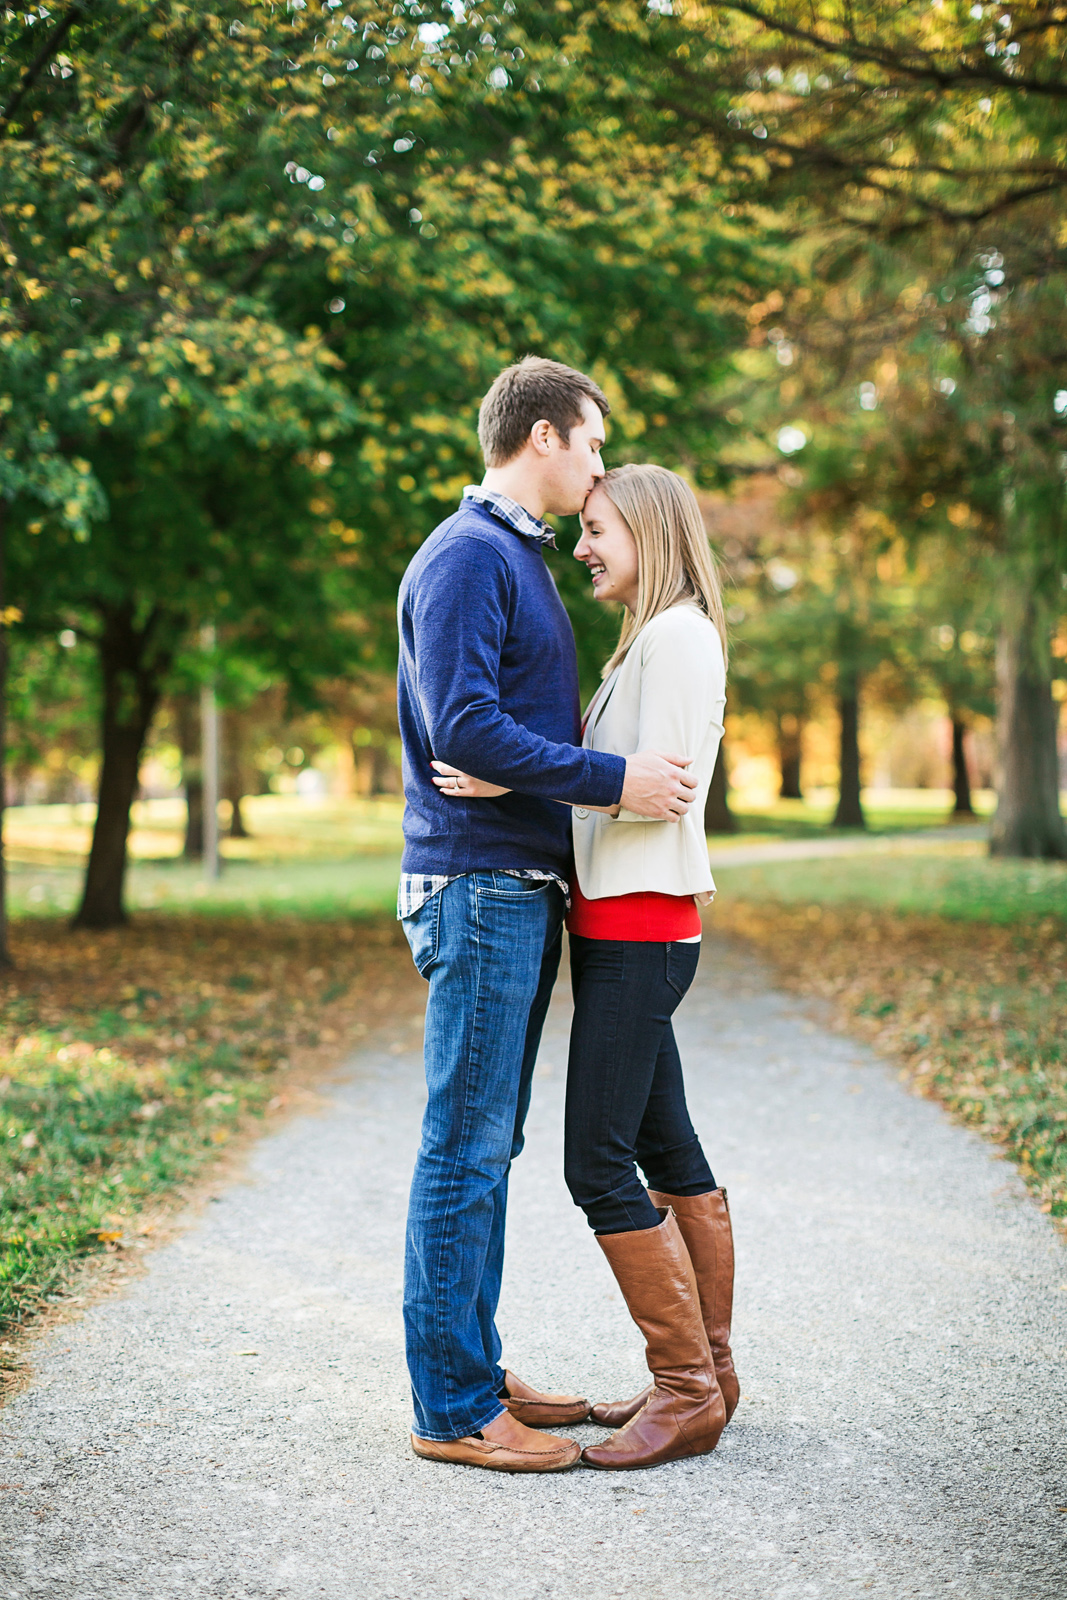 Oldani Photography St Louis Lafayette Square Park Engagement_20141102_164520.jpg